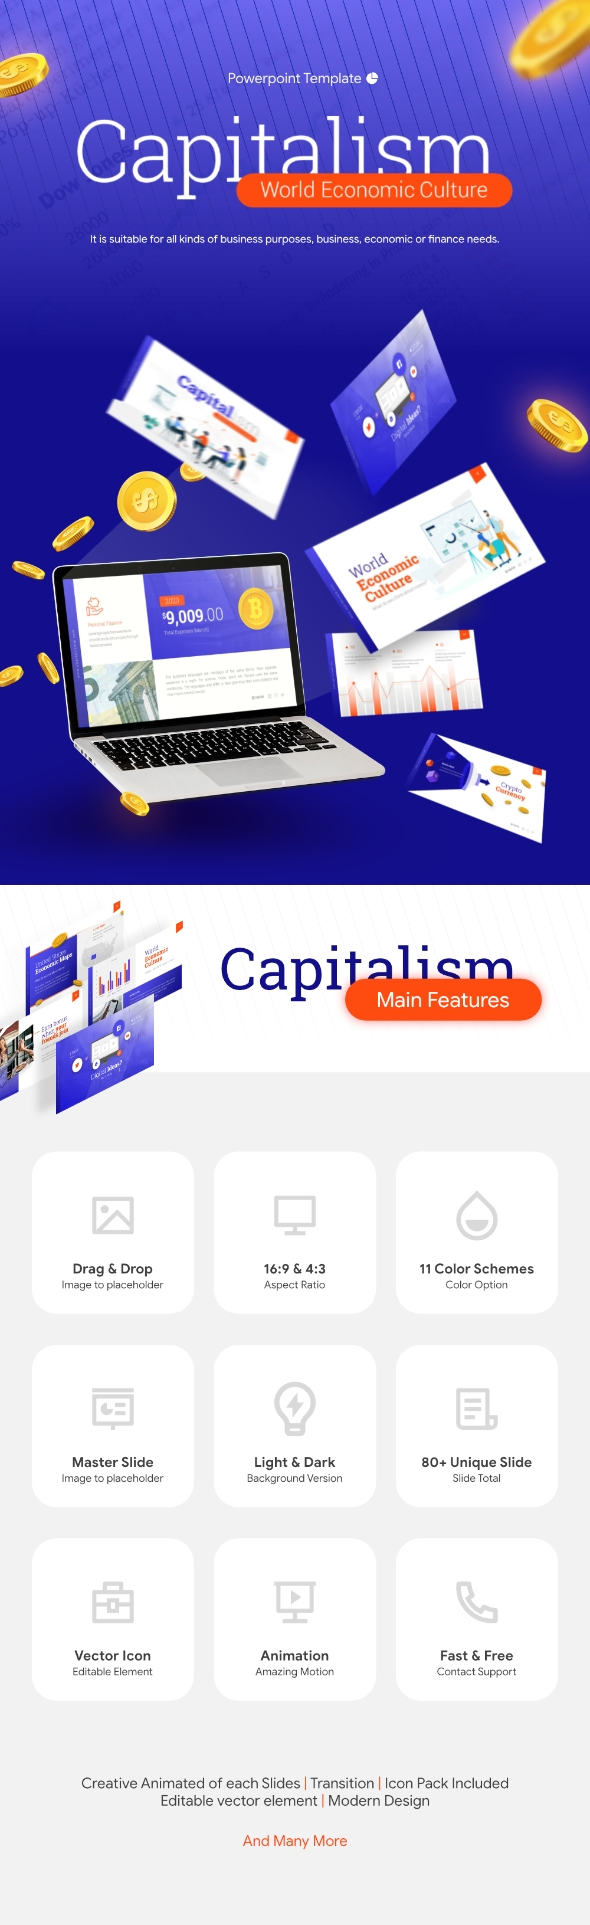 Capitalism - World Economic CulturePowerpoint Presentation Template Fully Animated